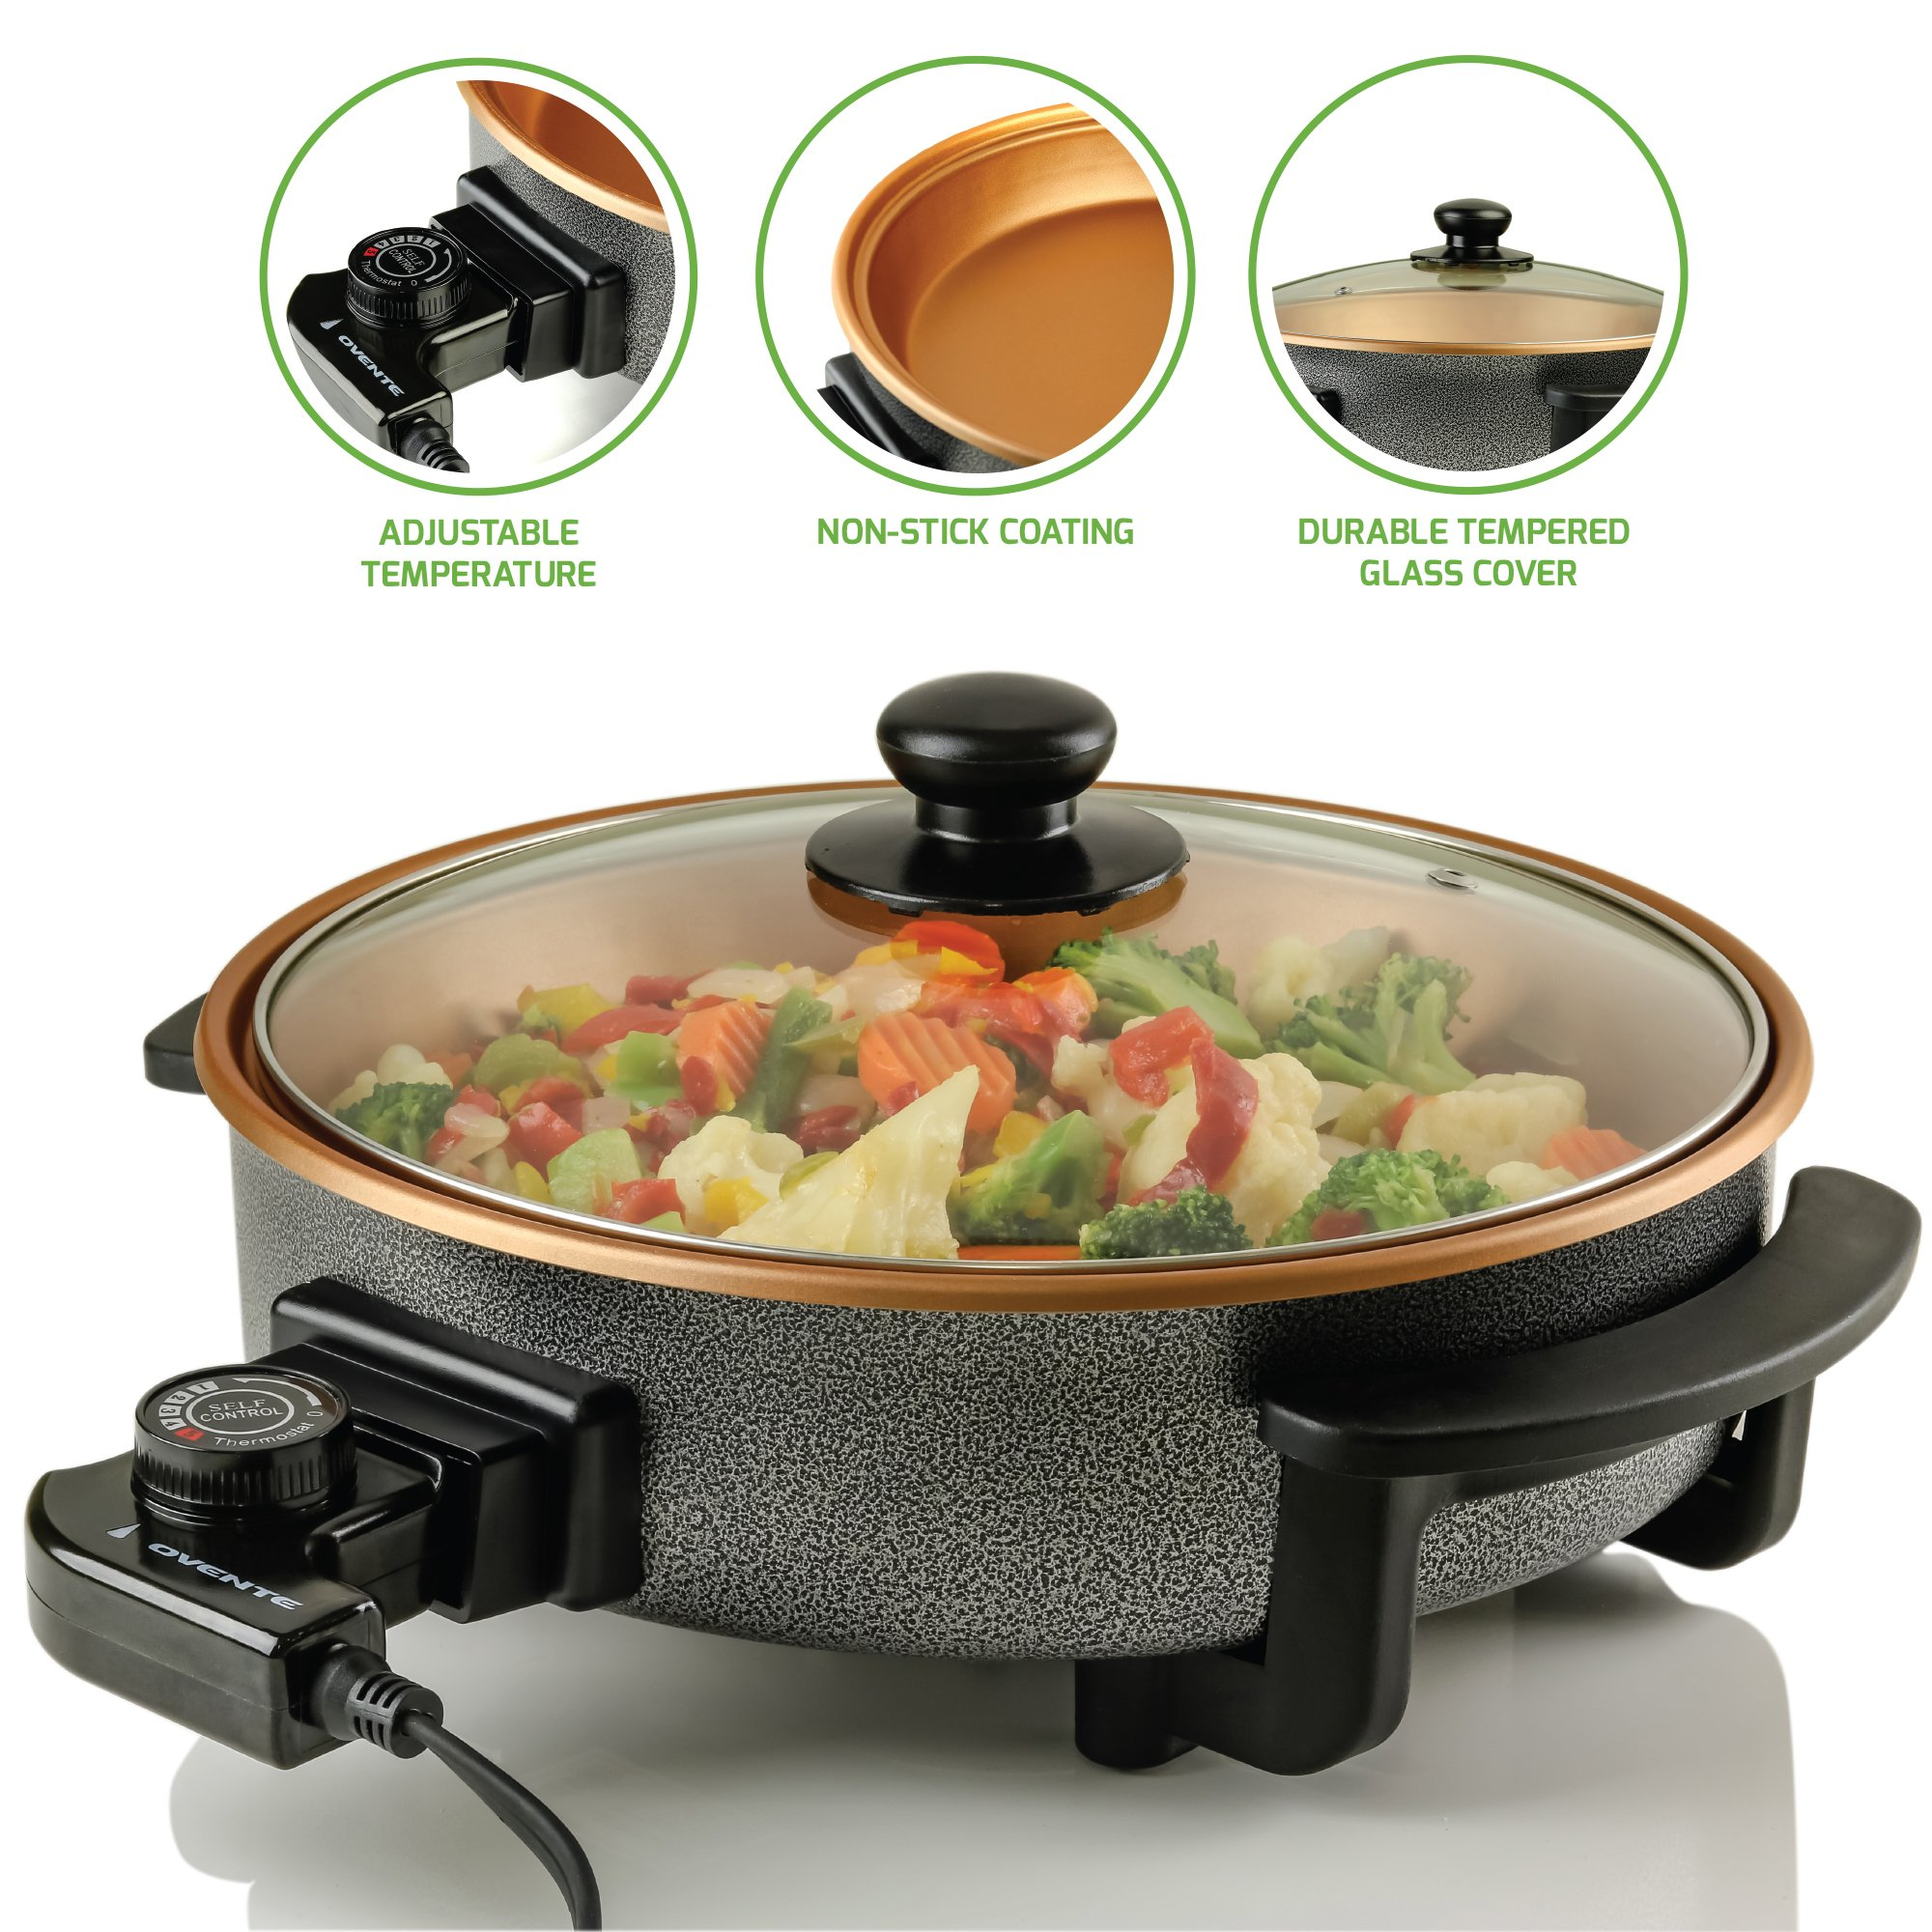 Ovente SK11112CO Electric Skillet with Non-Stick Aluminum Body, 12 Inch, 1400-Watts, Temperature Controller, Tempered Glass Cover, Cool-Touch Handles, Copper Interior